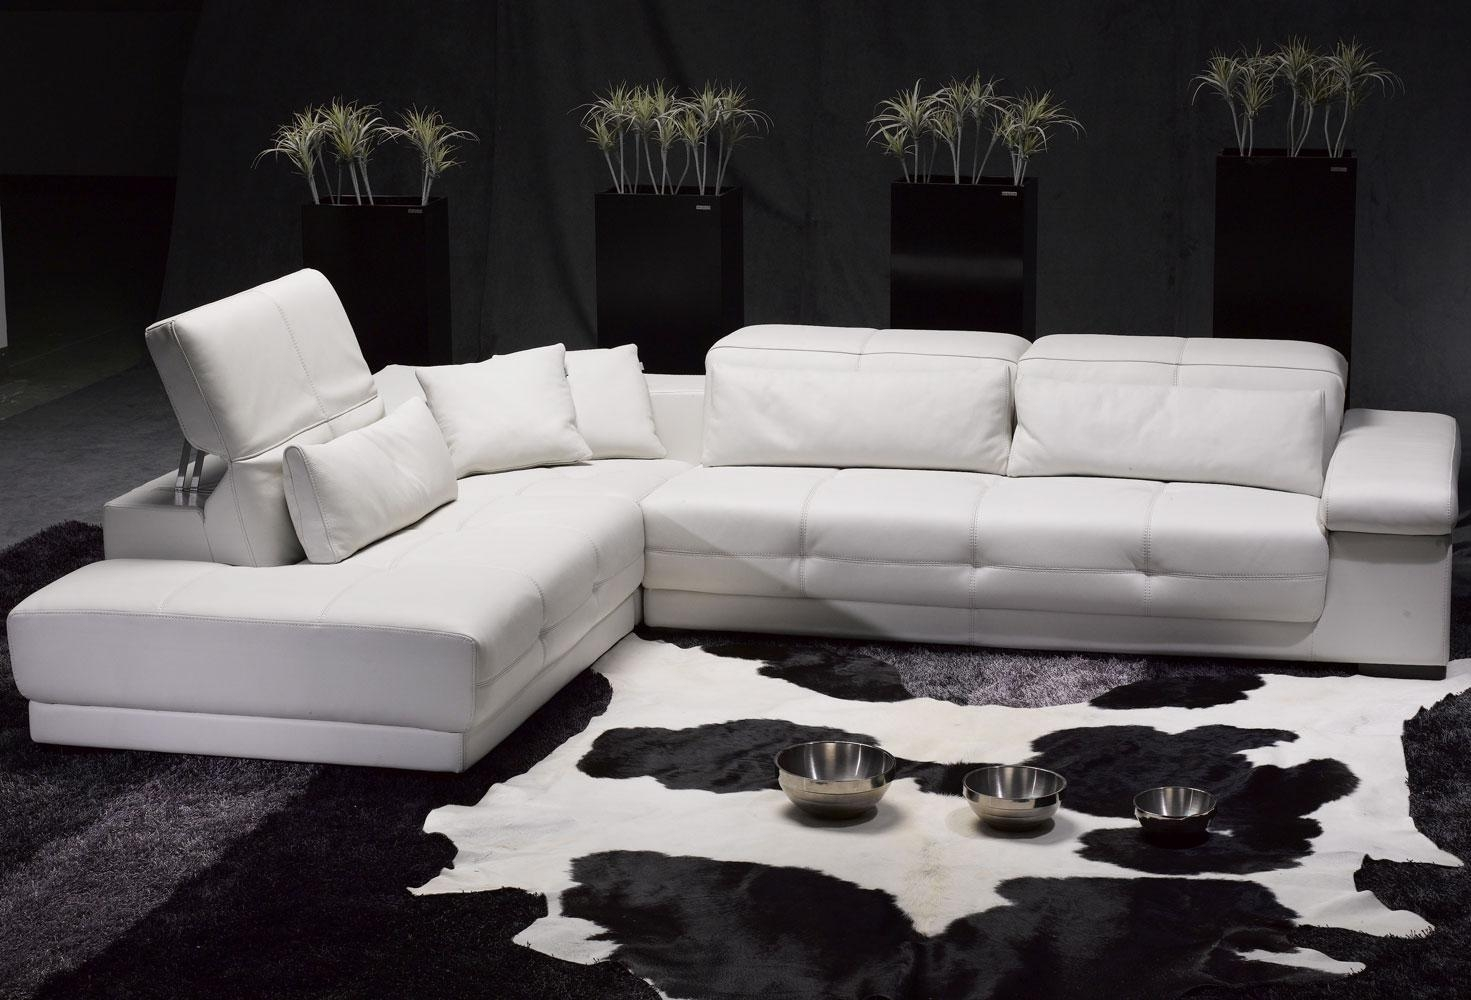 Living Room: Comfortable White Sectional Sofa For Elegant Living Throughout Leather Sofa Sectionals For Sale (Image 11 of 20)